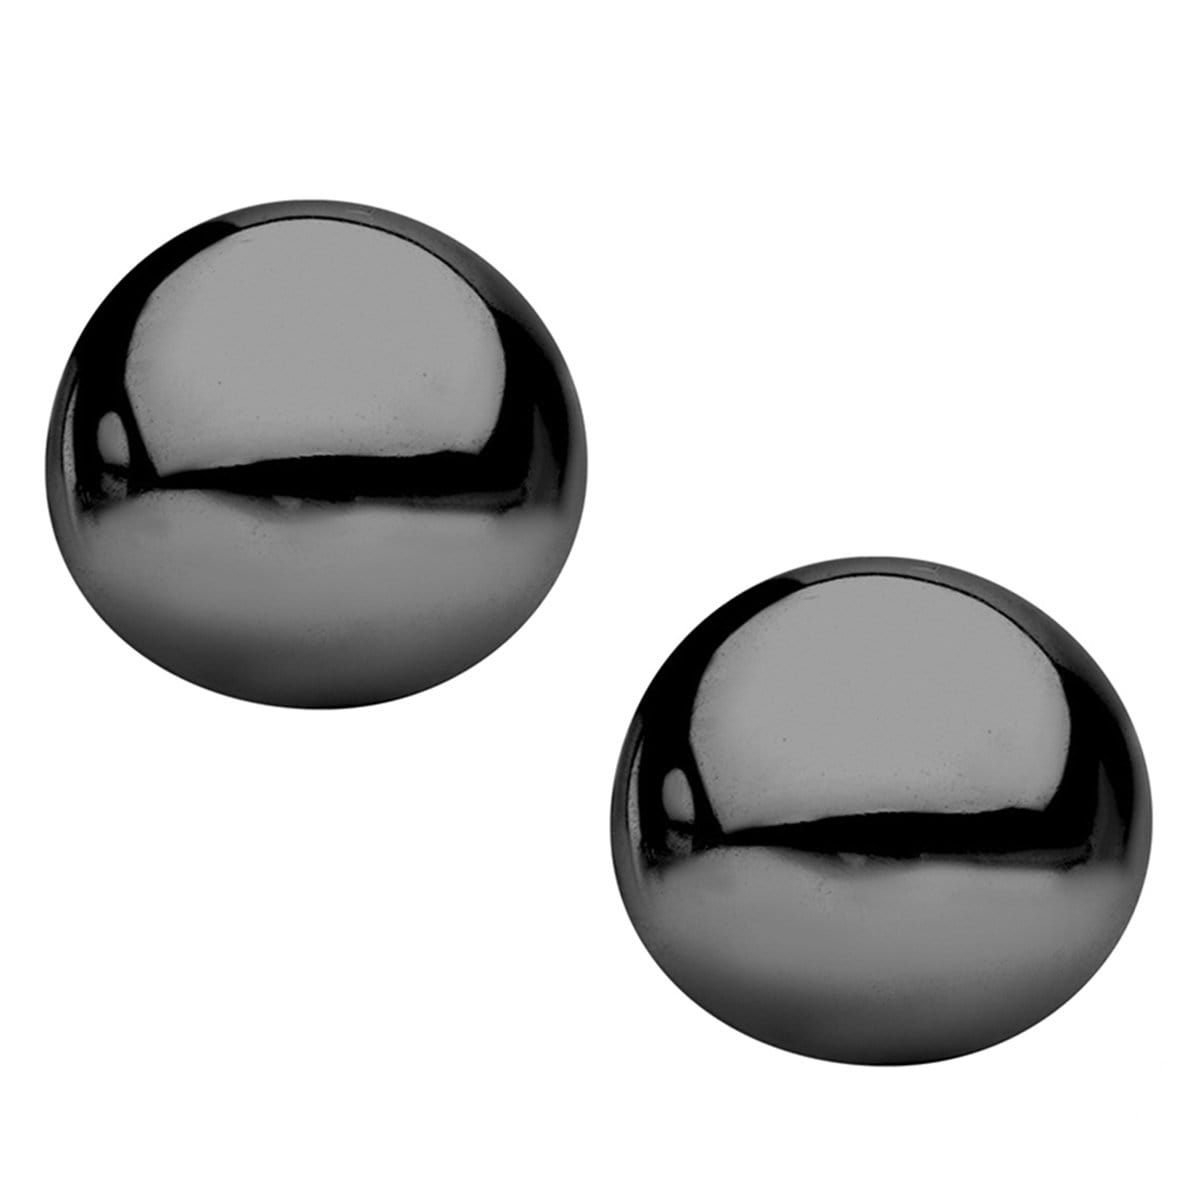 Black Stainless Steel Medium Round Dome Studs Earrings